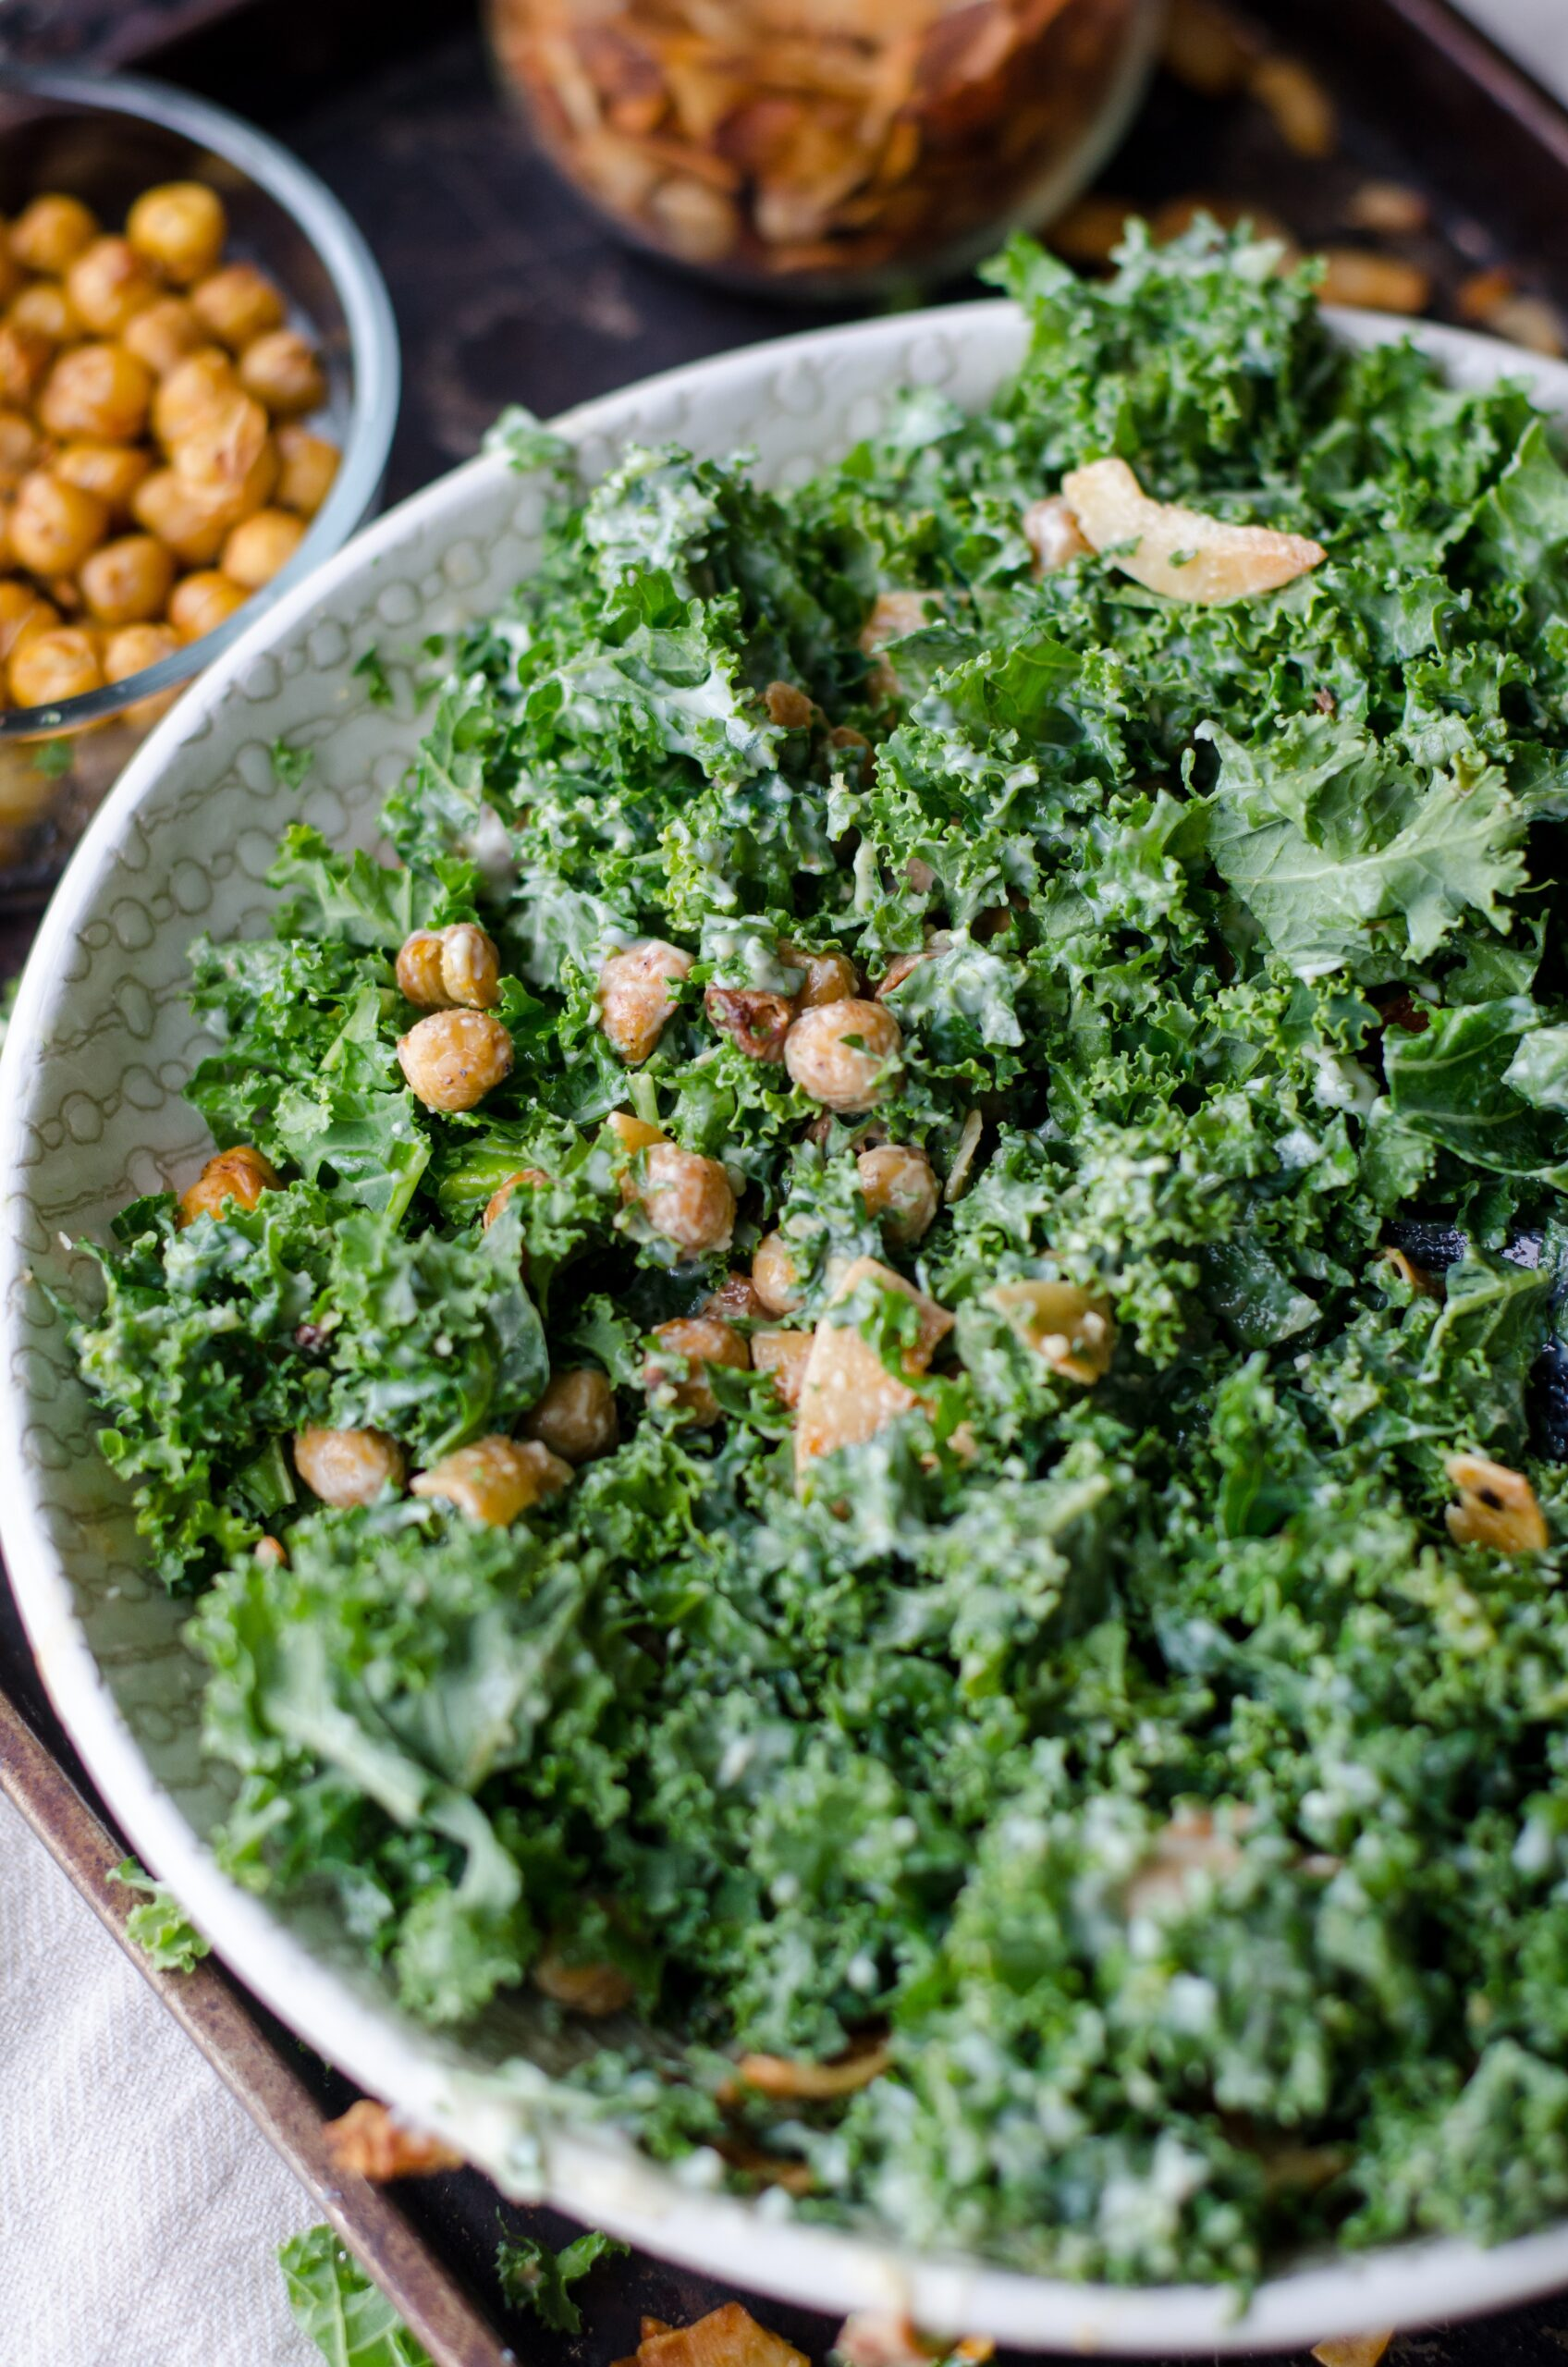 Kale with chickpeas, soy, chilli and garlic